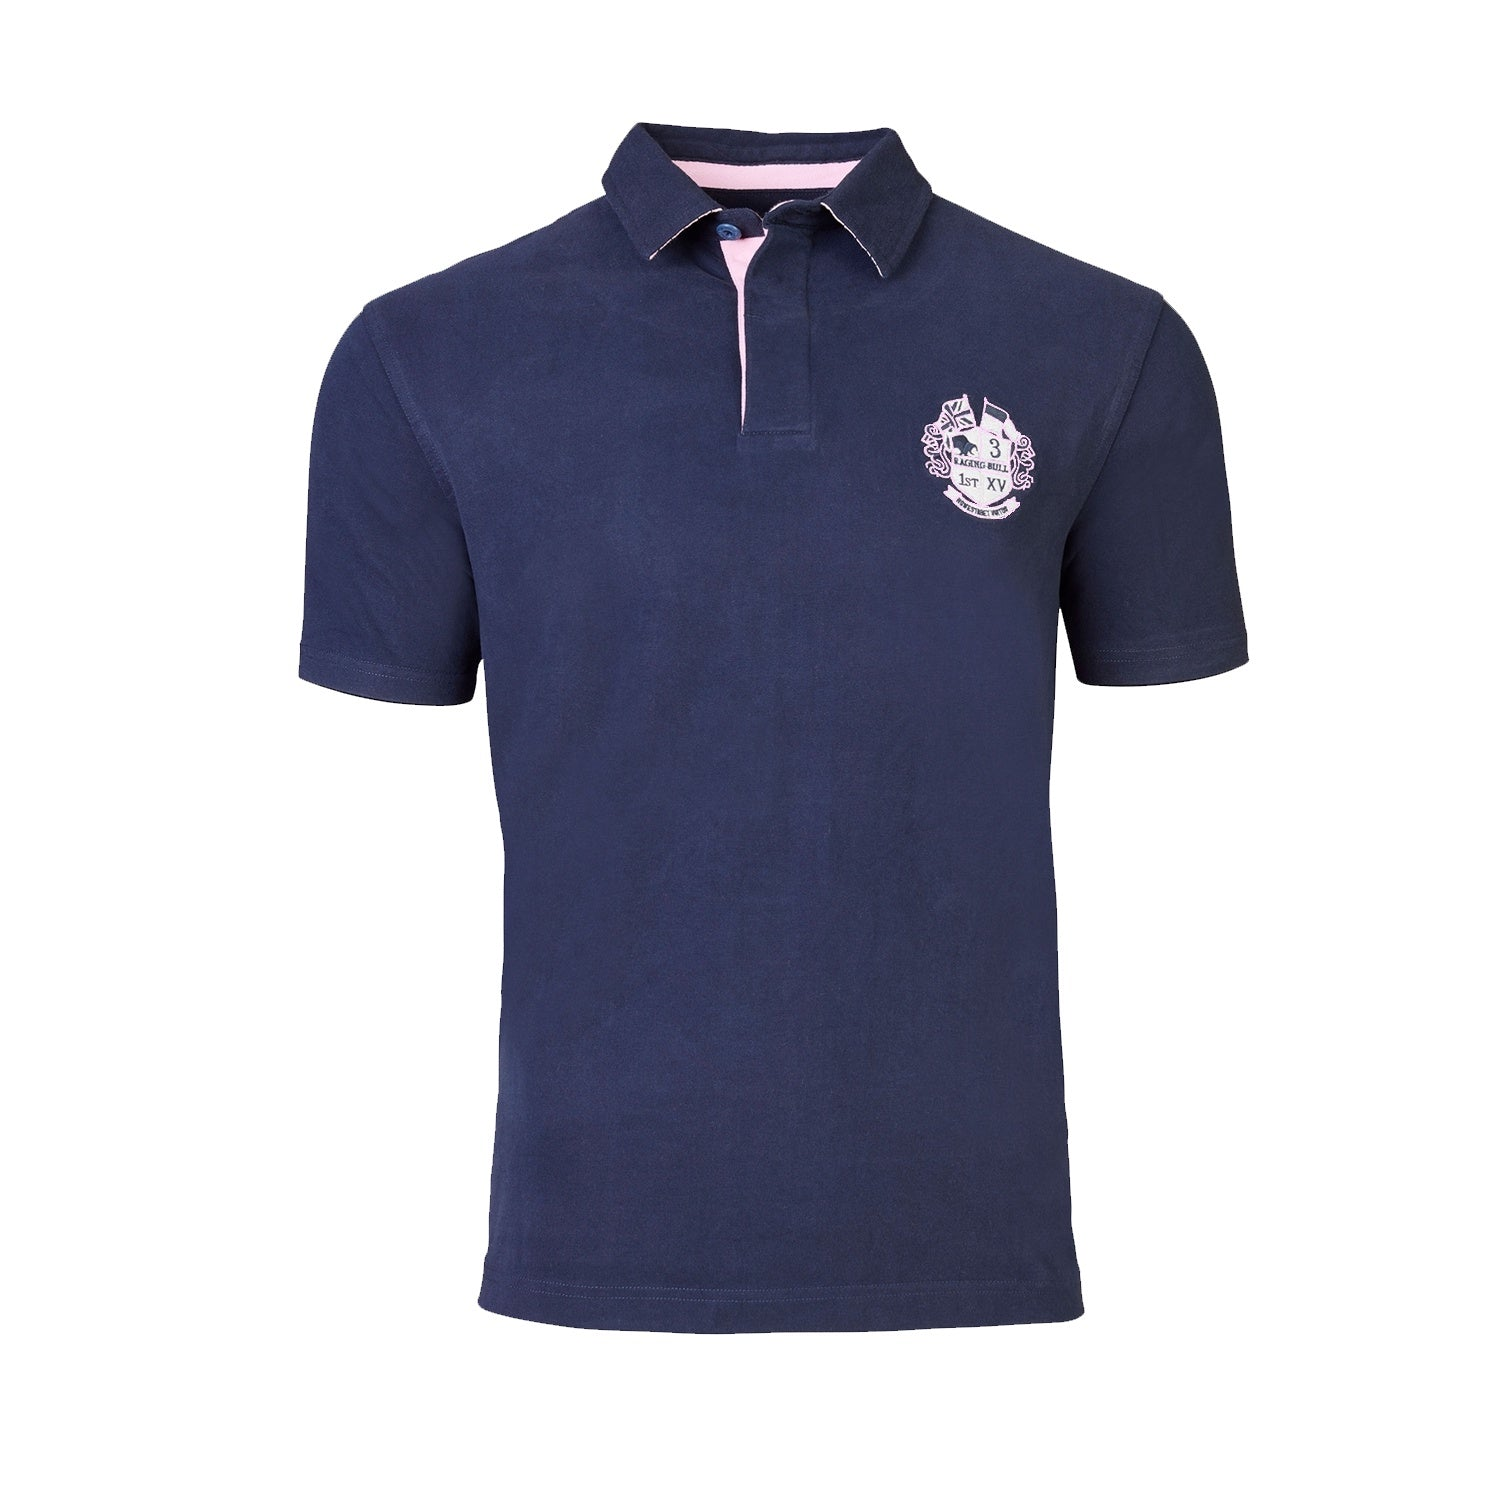 Raging Bull Signature Rugby Polo - S19RU27 - Navy 1